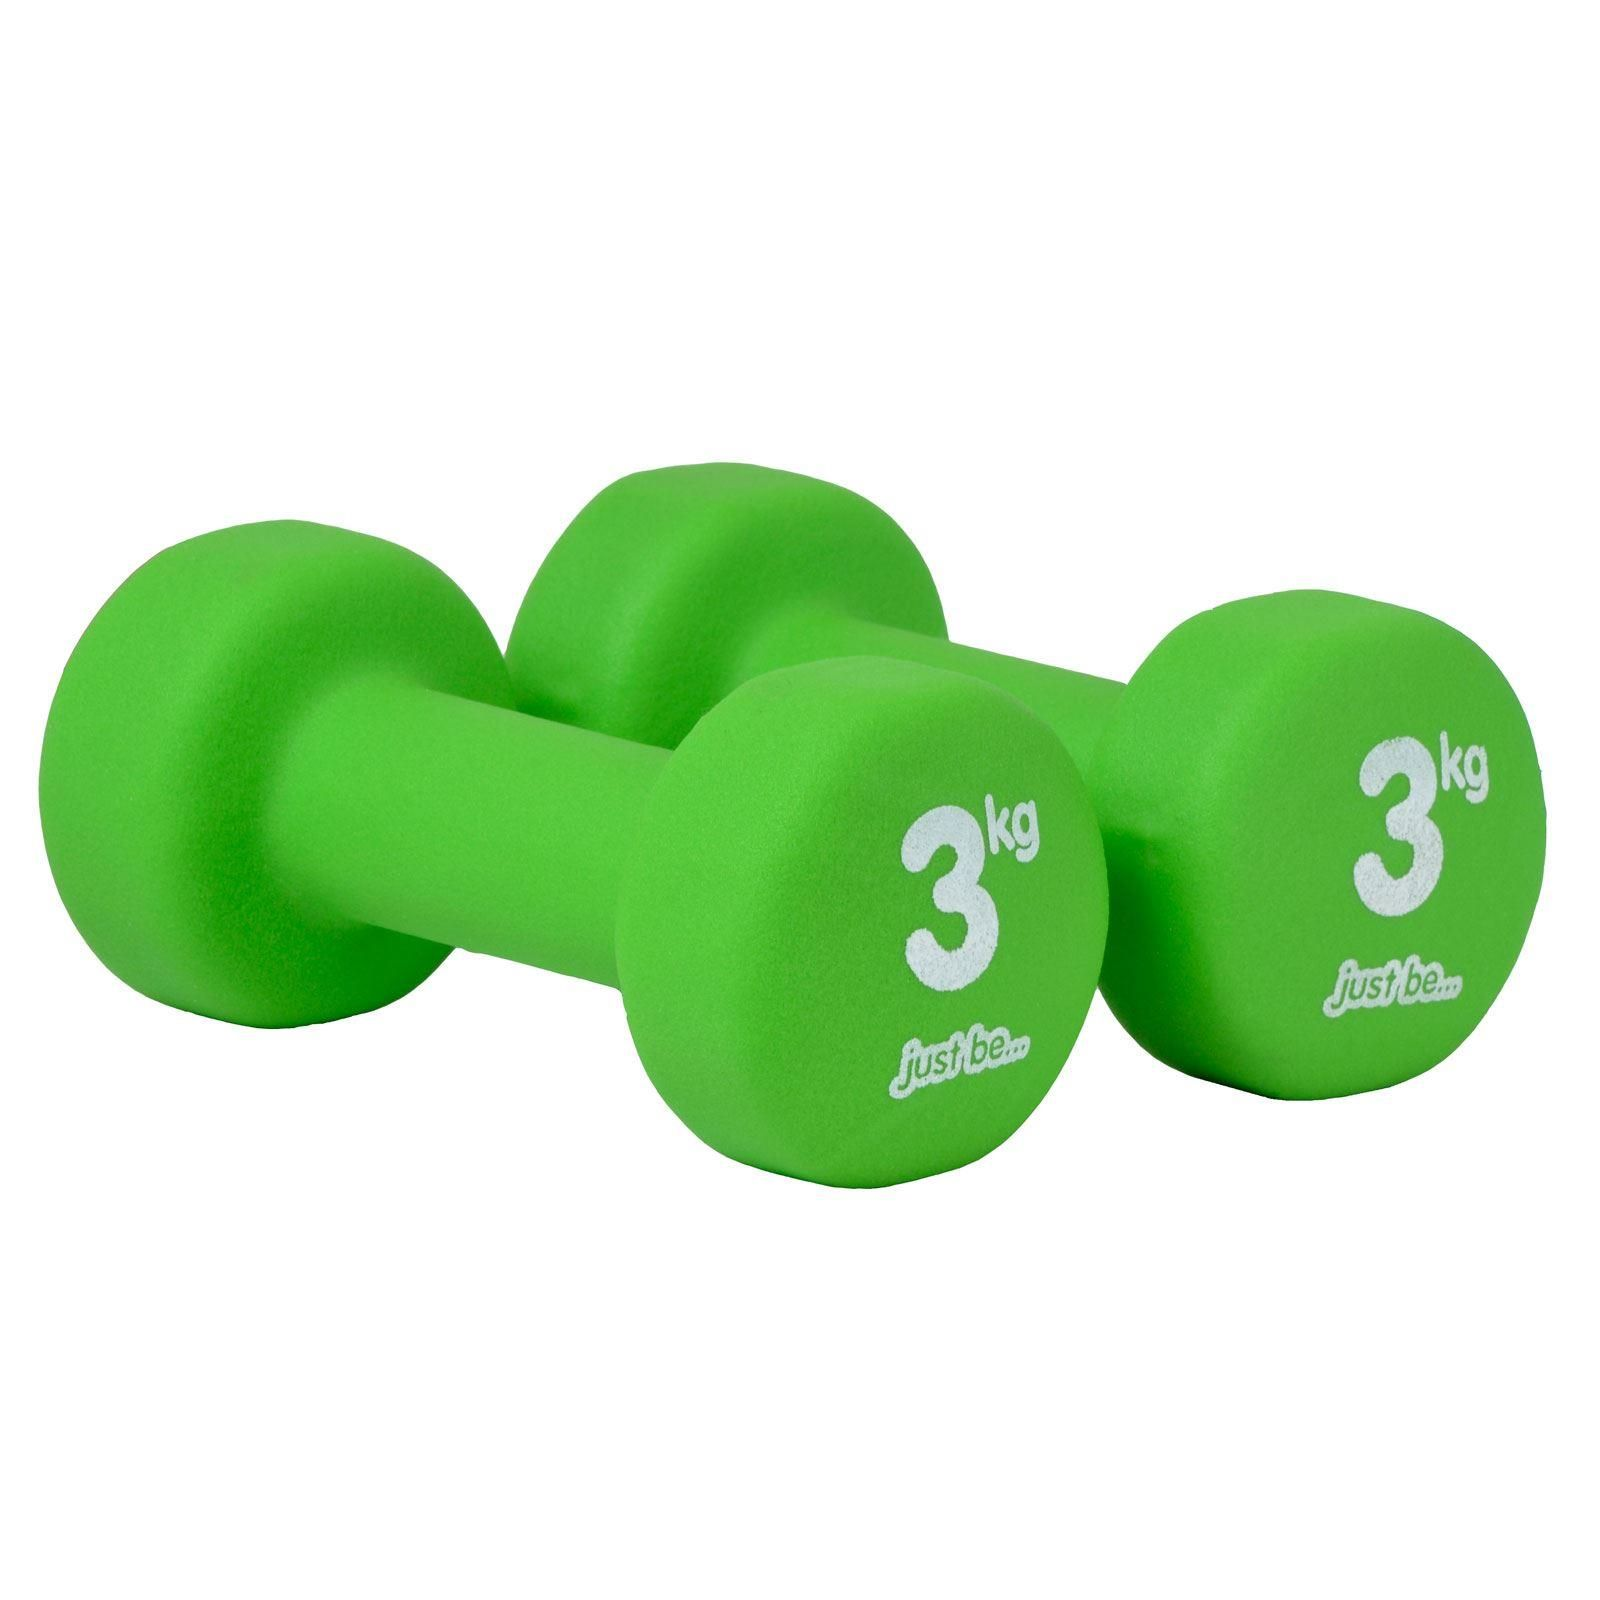 just be Green 3kg Fitness Dumbbell Twin Pack Top View